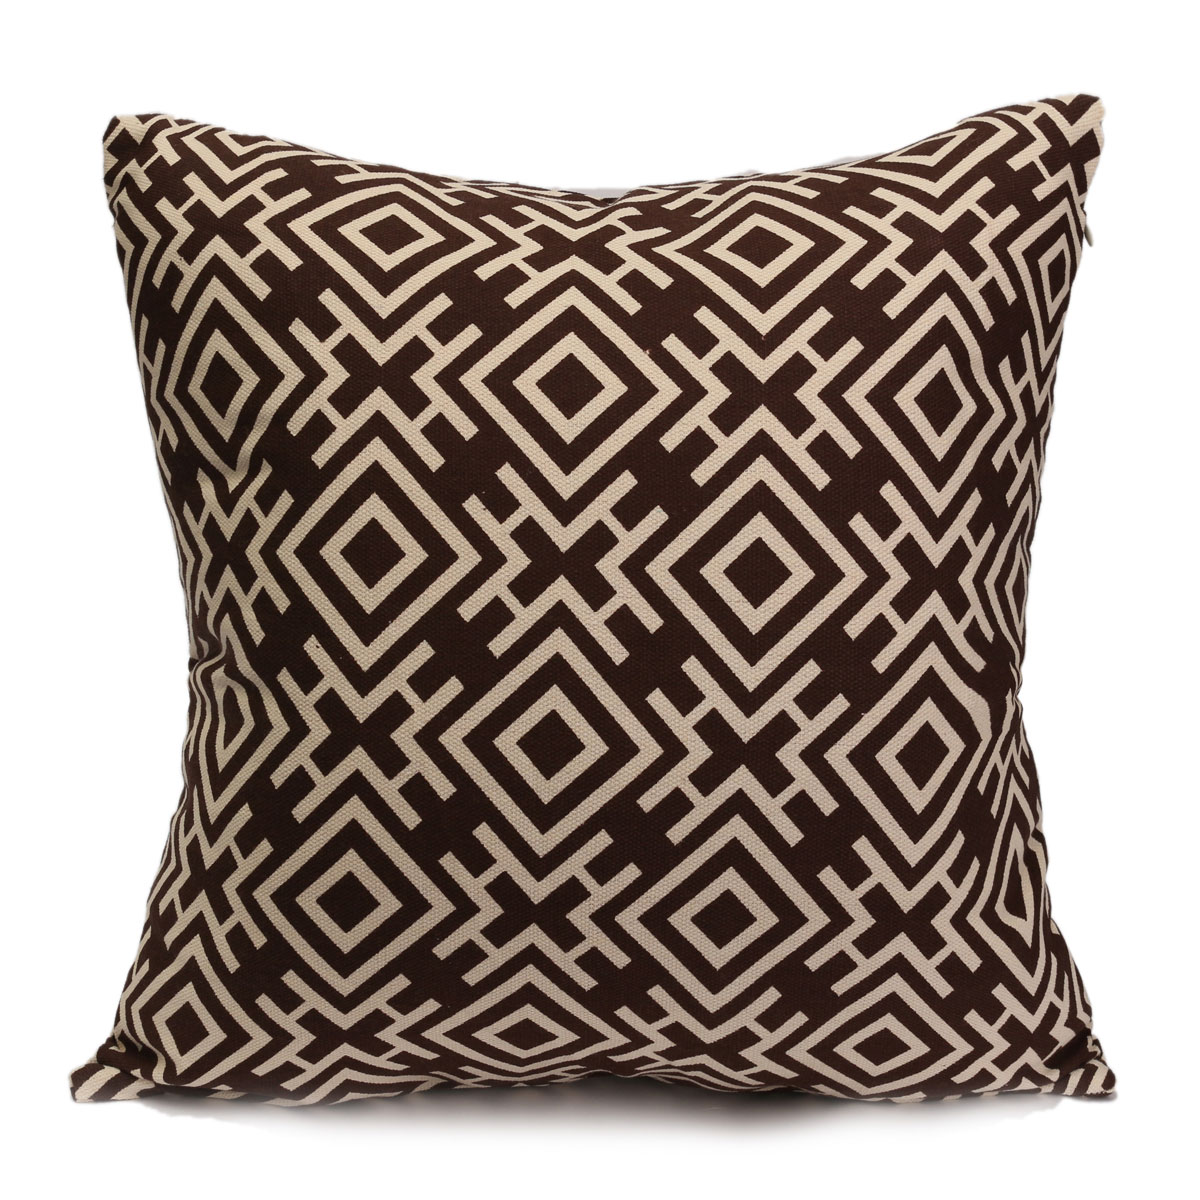 housse coussin chinoiserie g om trique canap taie d 39 oreiller cushion cover ebay. Black Bedroom Furniture Sets. Home Design Ideas